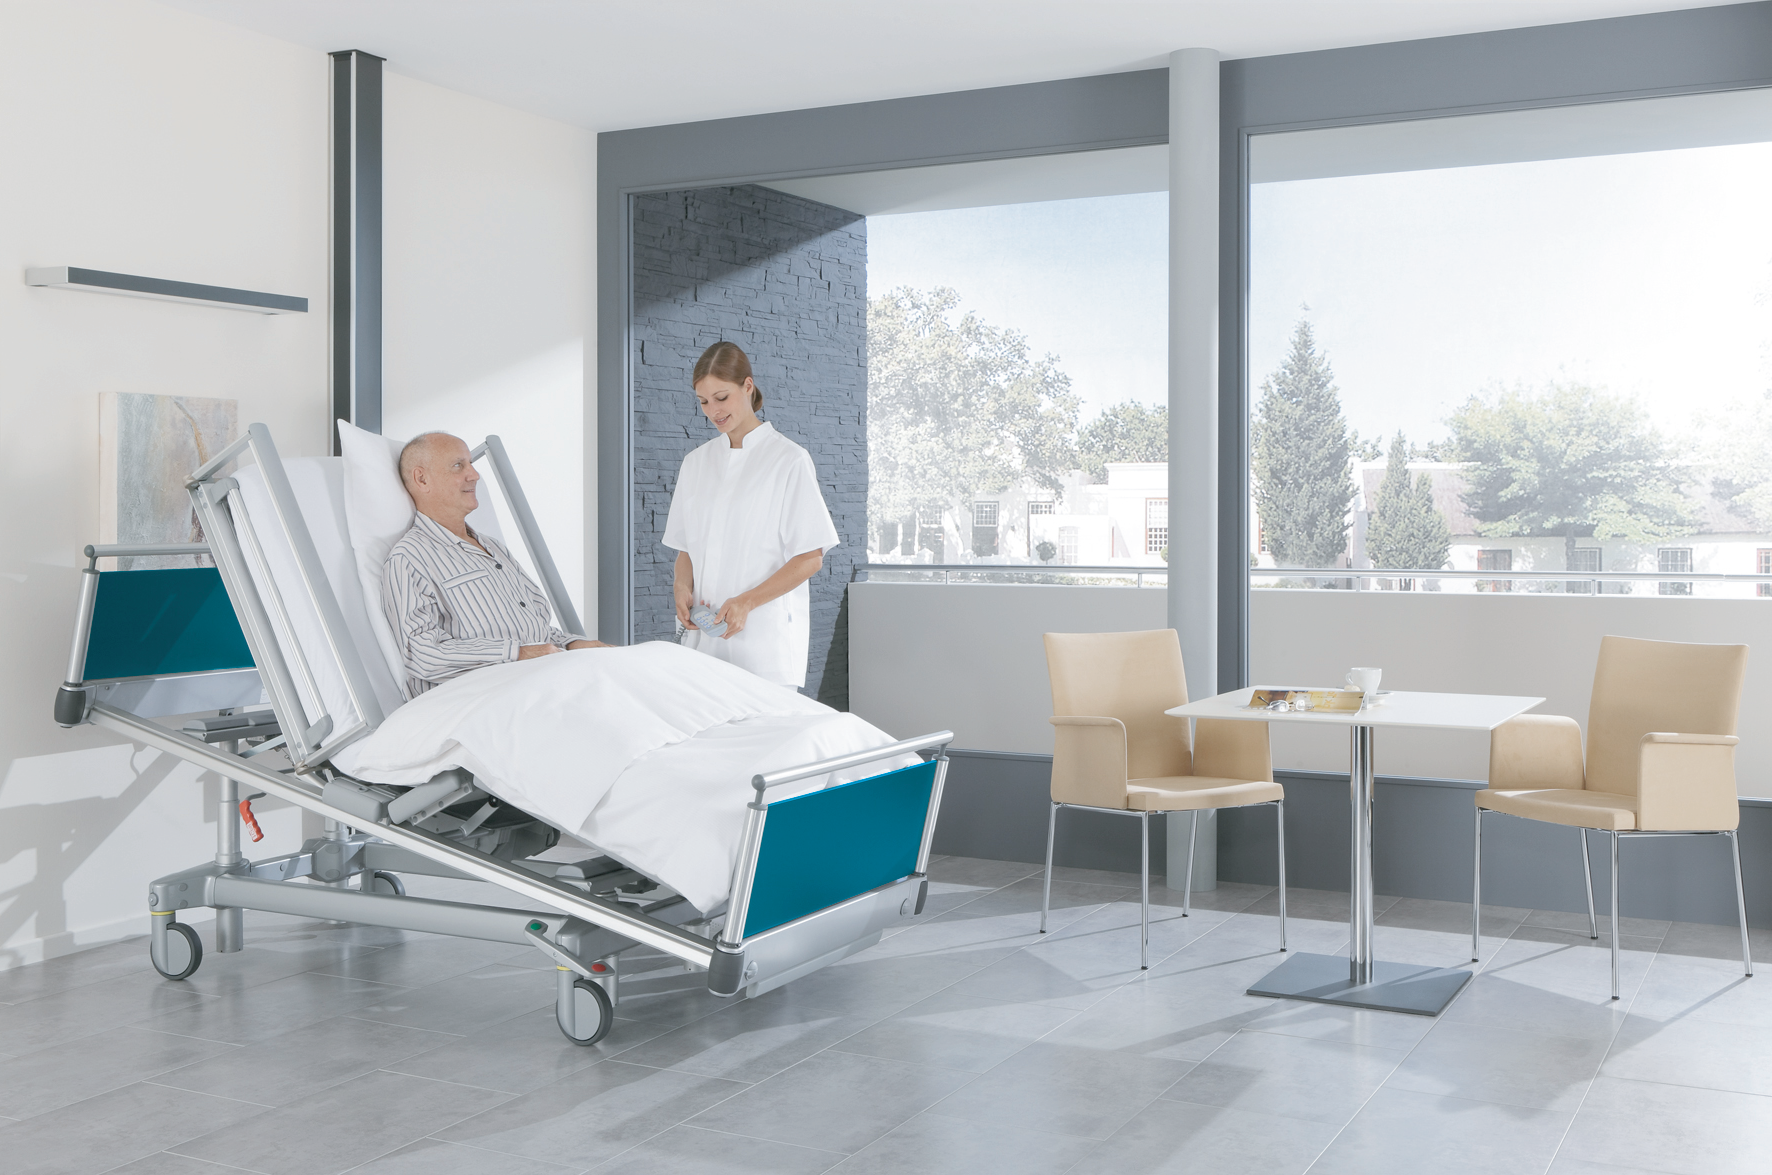 Modernform Health & Care, Healthcare furniture, Home care furniture, Hospital bed, Wheel chair,  เตี